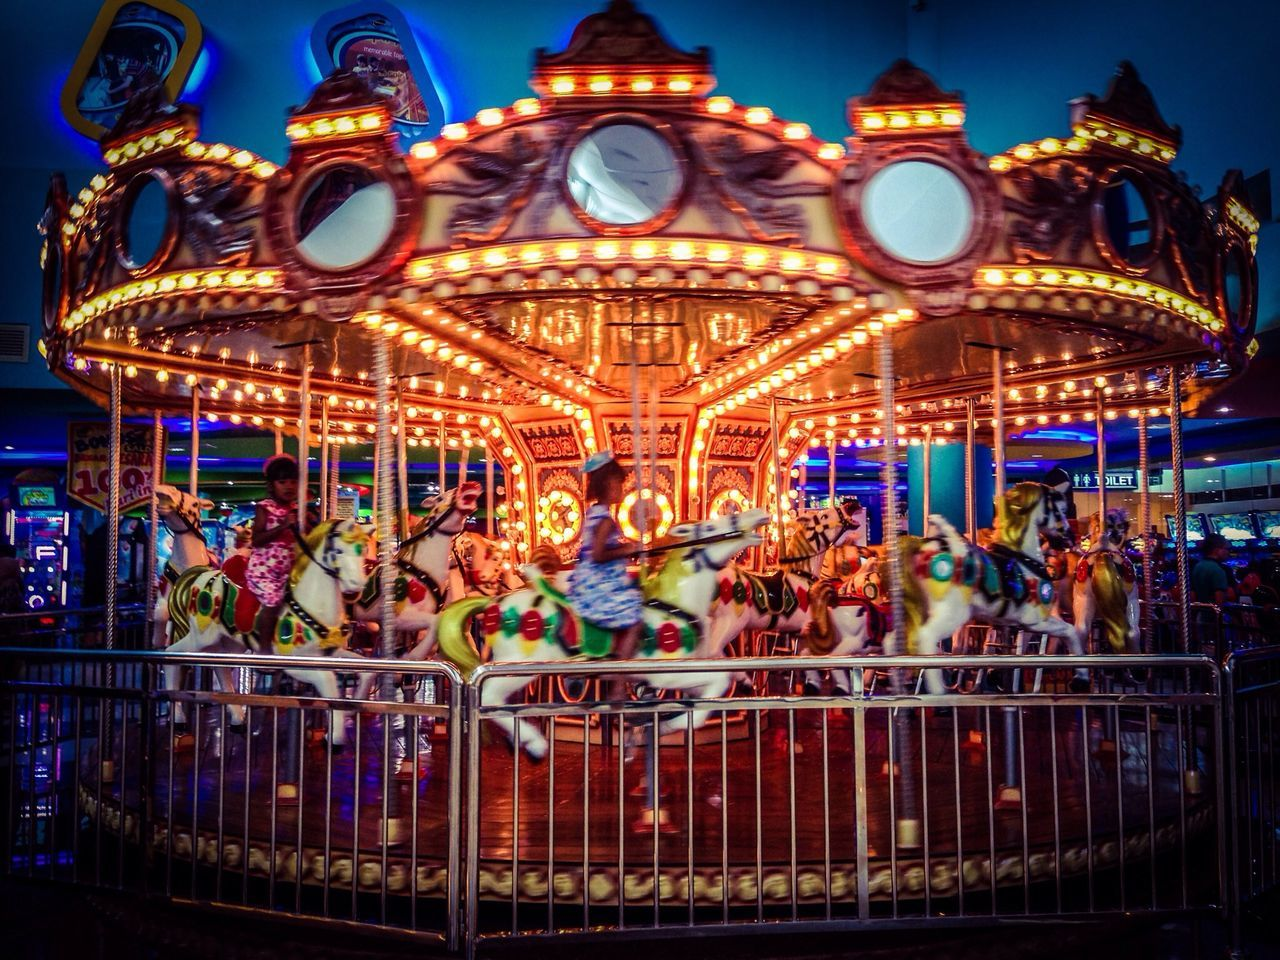 amusement park, carousel, arts culture and entertainment, amusement park ride, illuminated, leisure activity, merry-go-round, night, enjoyment, carousel horses, fun, outdoors, group of people, sky, people